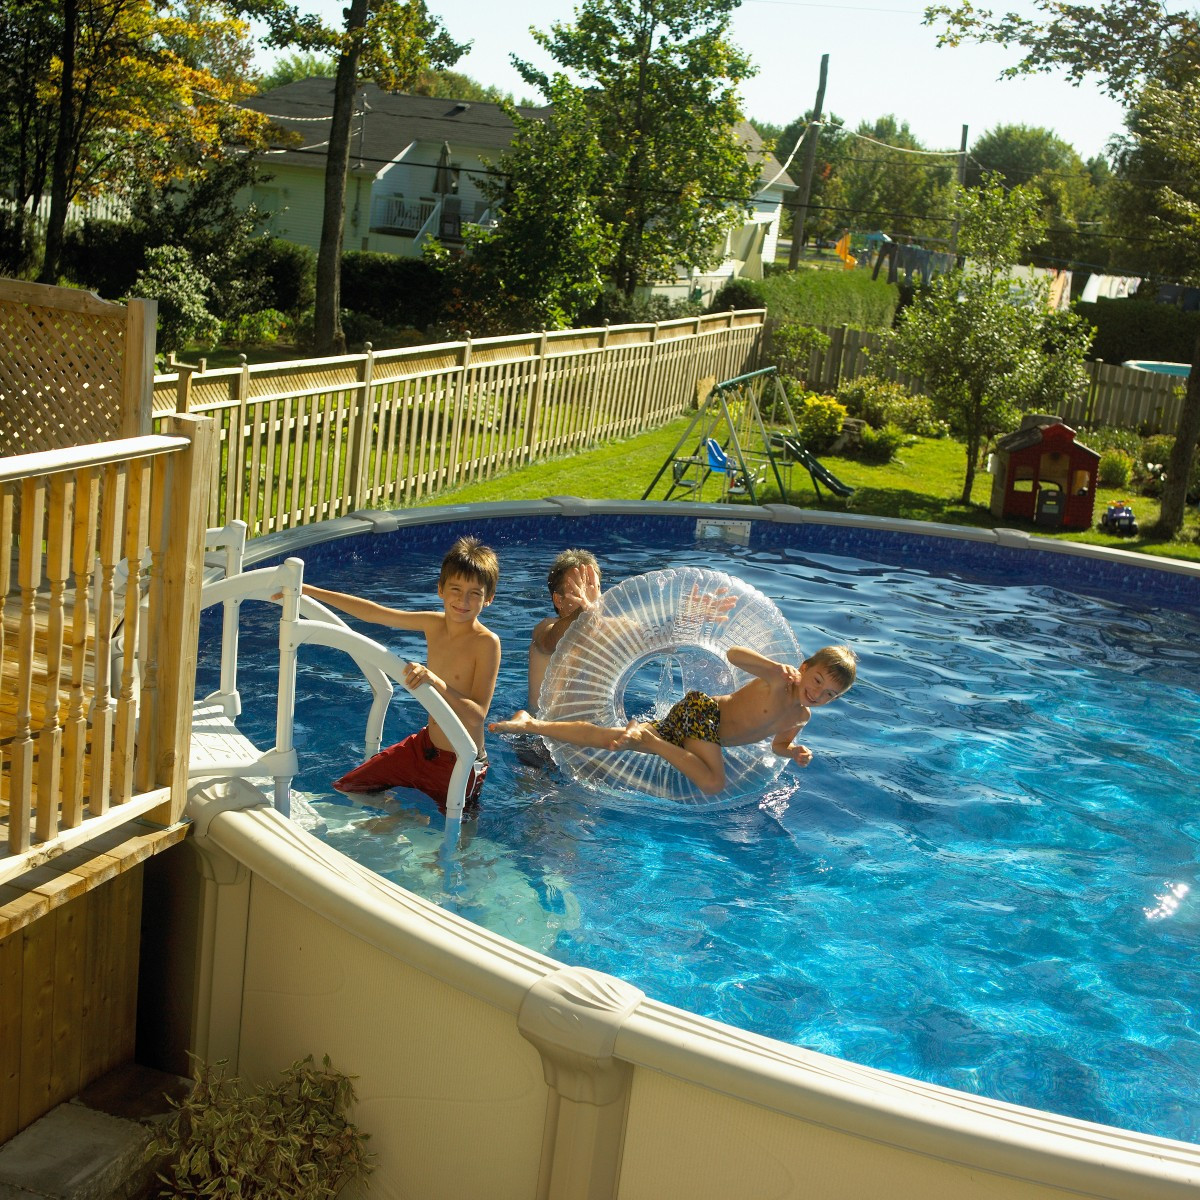 Kids Outdoor Swimming Pool  Swimming Pool Safety for Small Children – Supervise